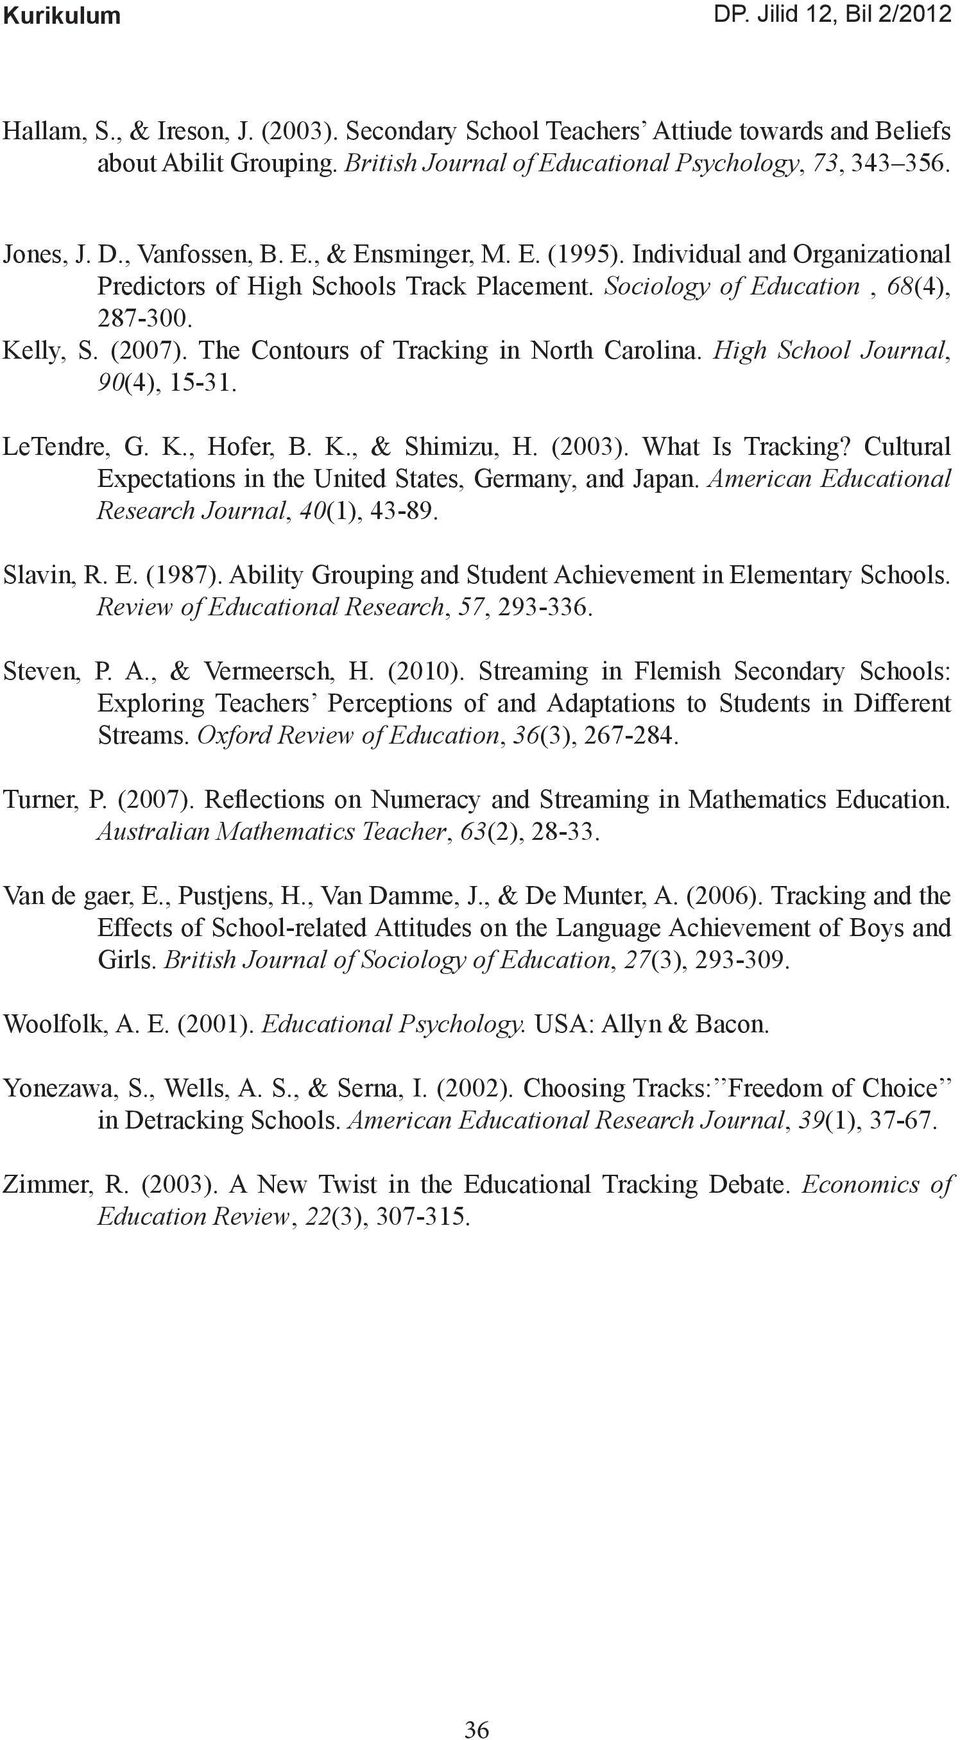 High School Journal, 90(4), 15-31. LeTendre, G. K., Hofer, B. K., & Shimizu, H. (2003). What Is Tracking? Cultural Expectations in the United States, Germany, and Japan.